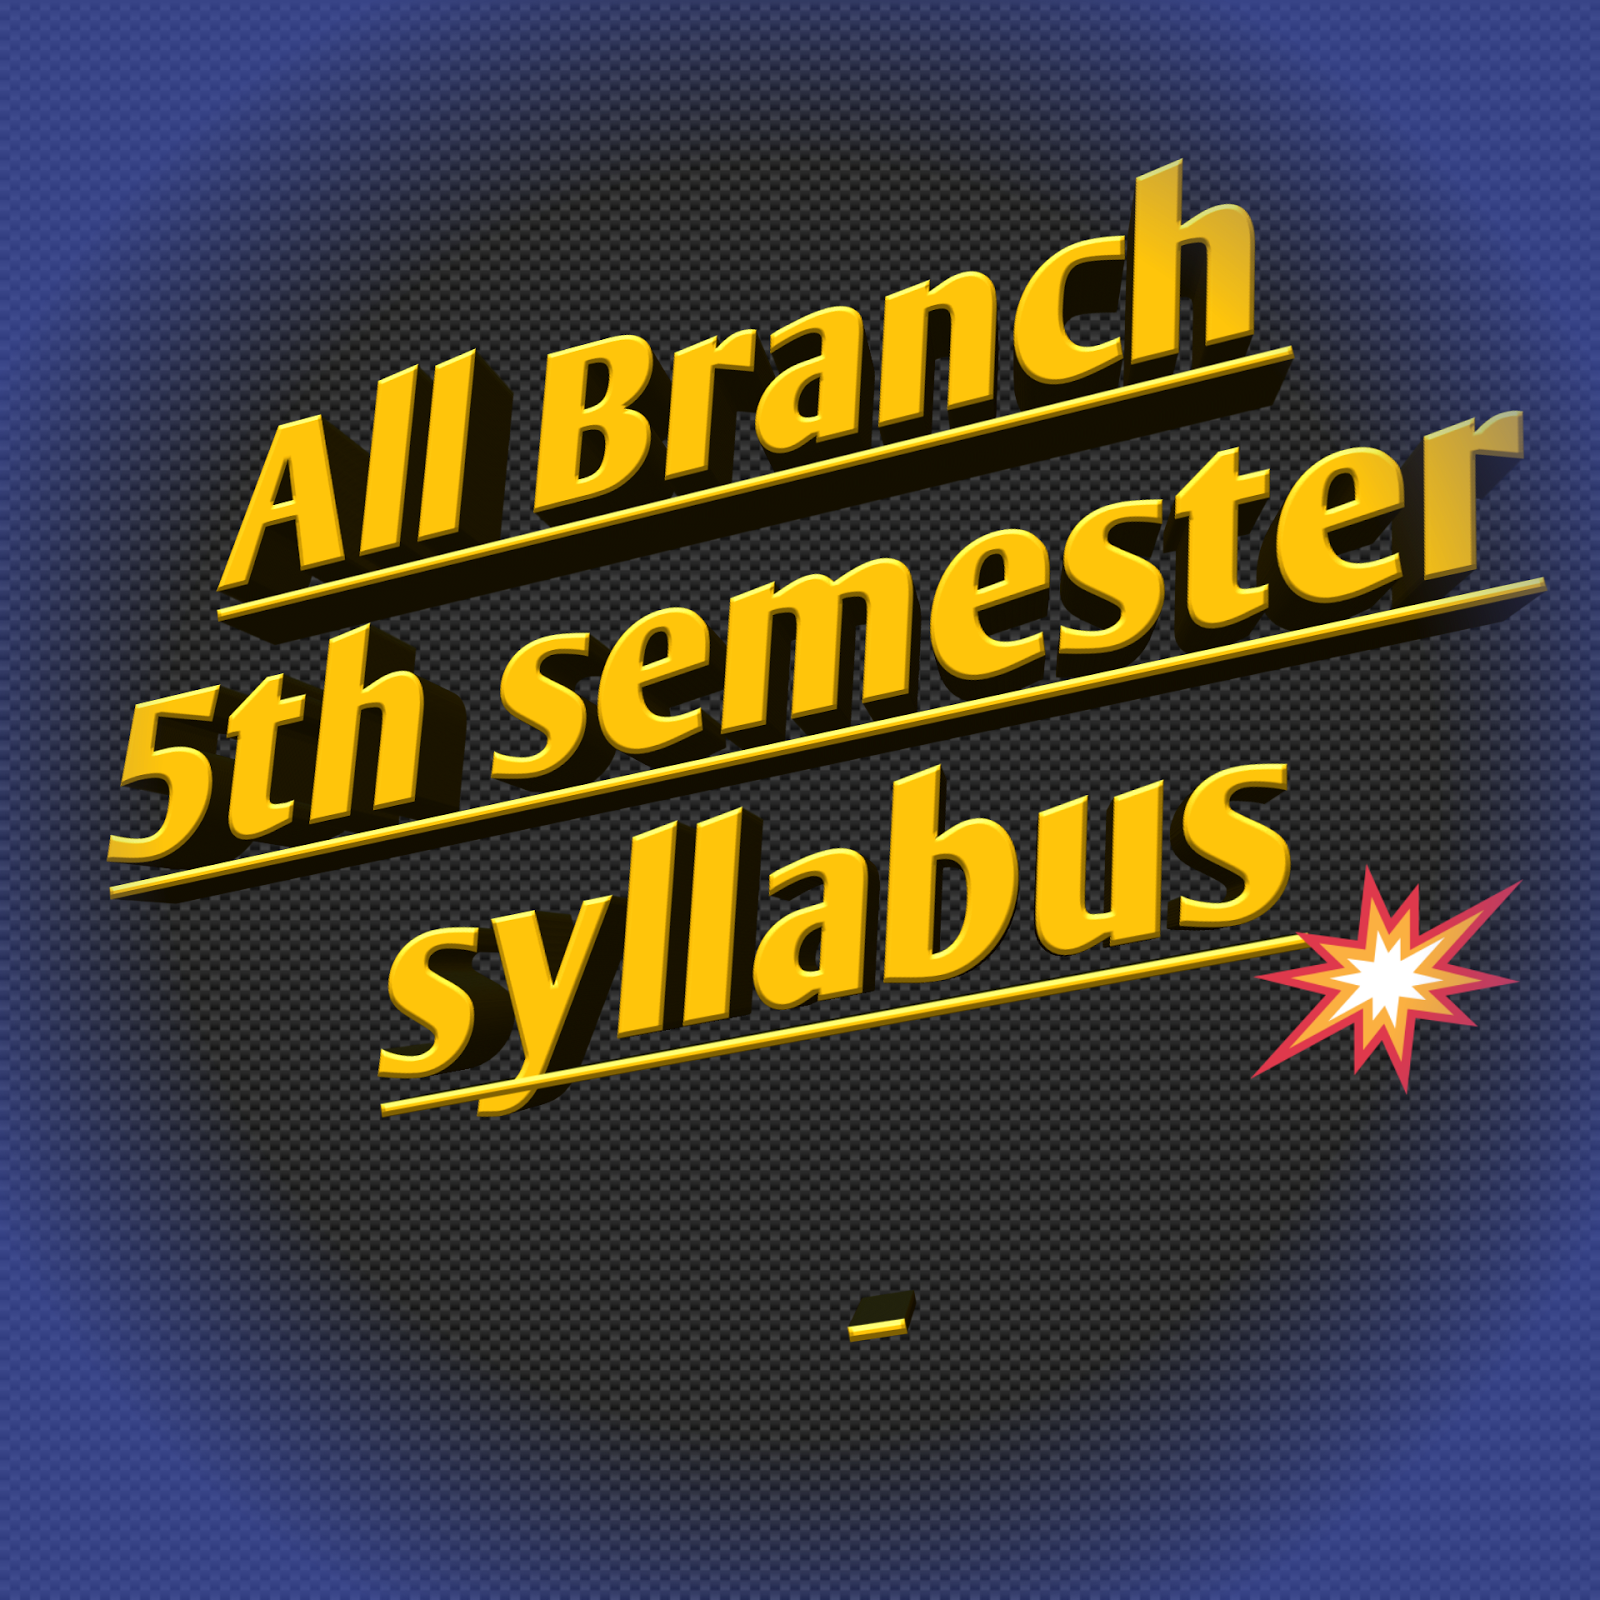 4th sem syllabus Find 4th sem syllabus publications and publishers at fliphtml5com, download and read 4th sem syllabus pdfs for free 4th sem syllabus of b 23 pages, published by , 2015-04-18 00:42:02.